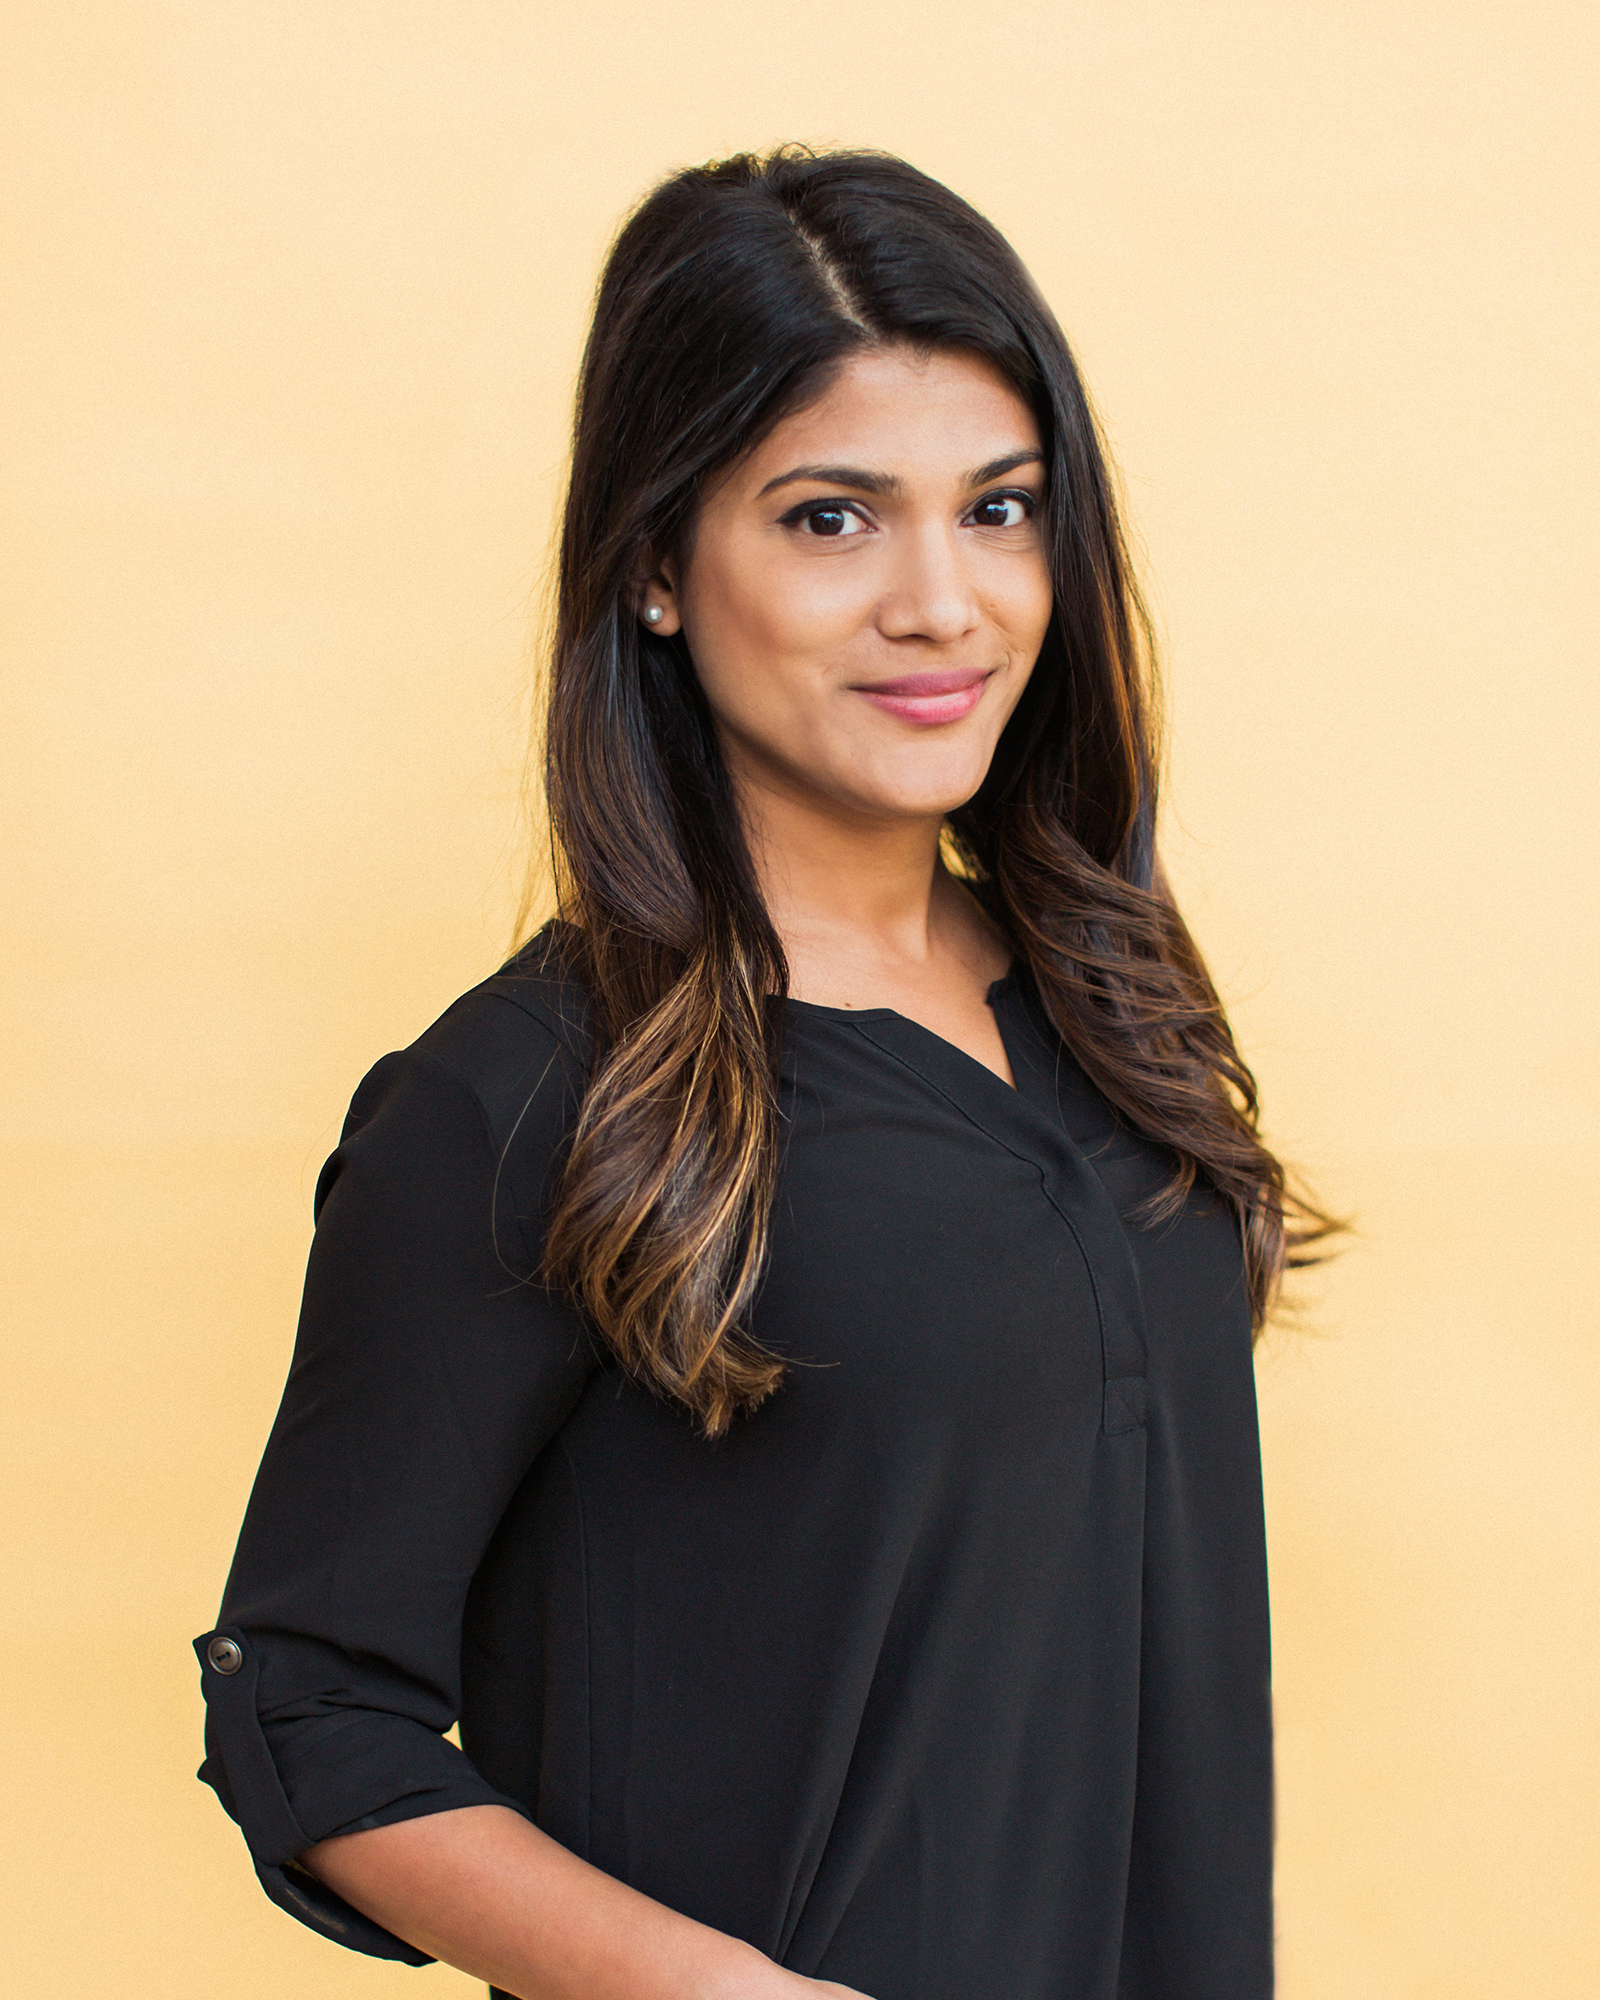 Tareen Alam, manager of creative content and social media for Bumble